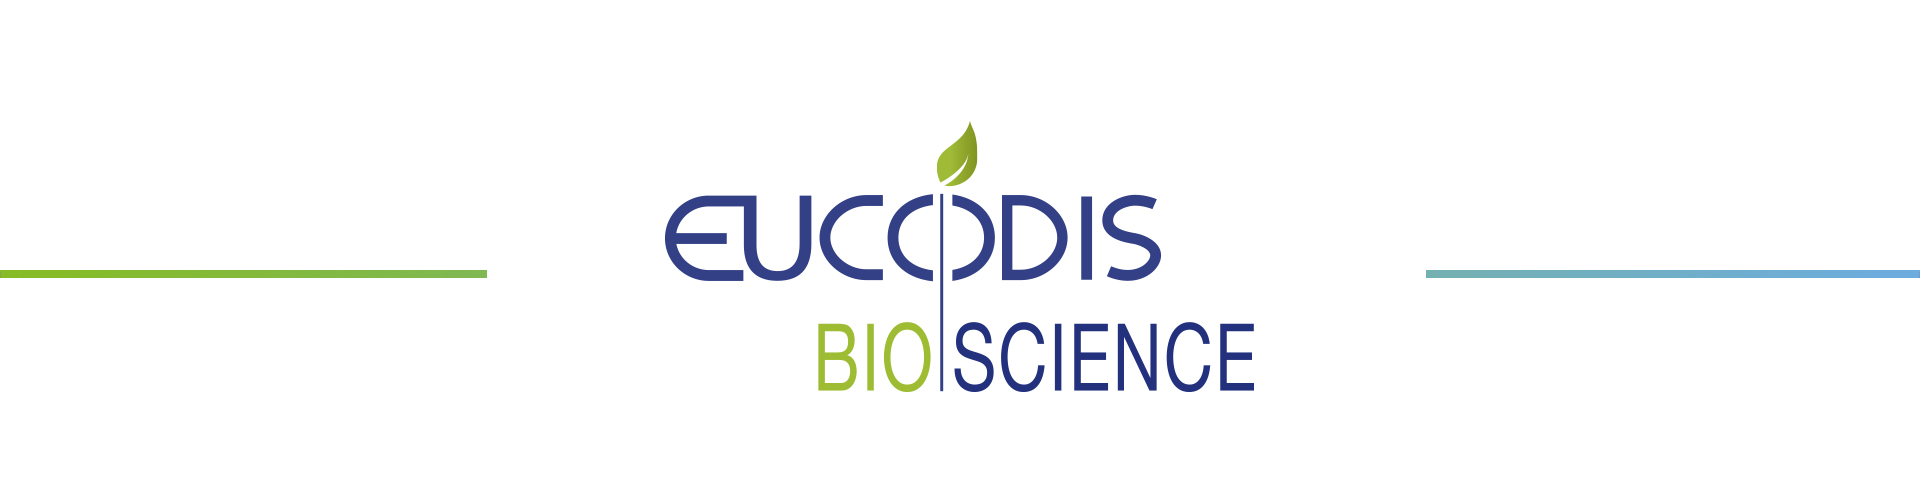 EUCODIS Bioscience | Vienna BioCenter